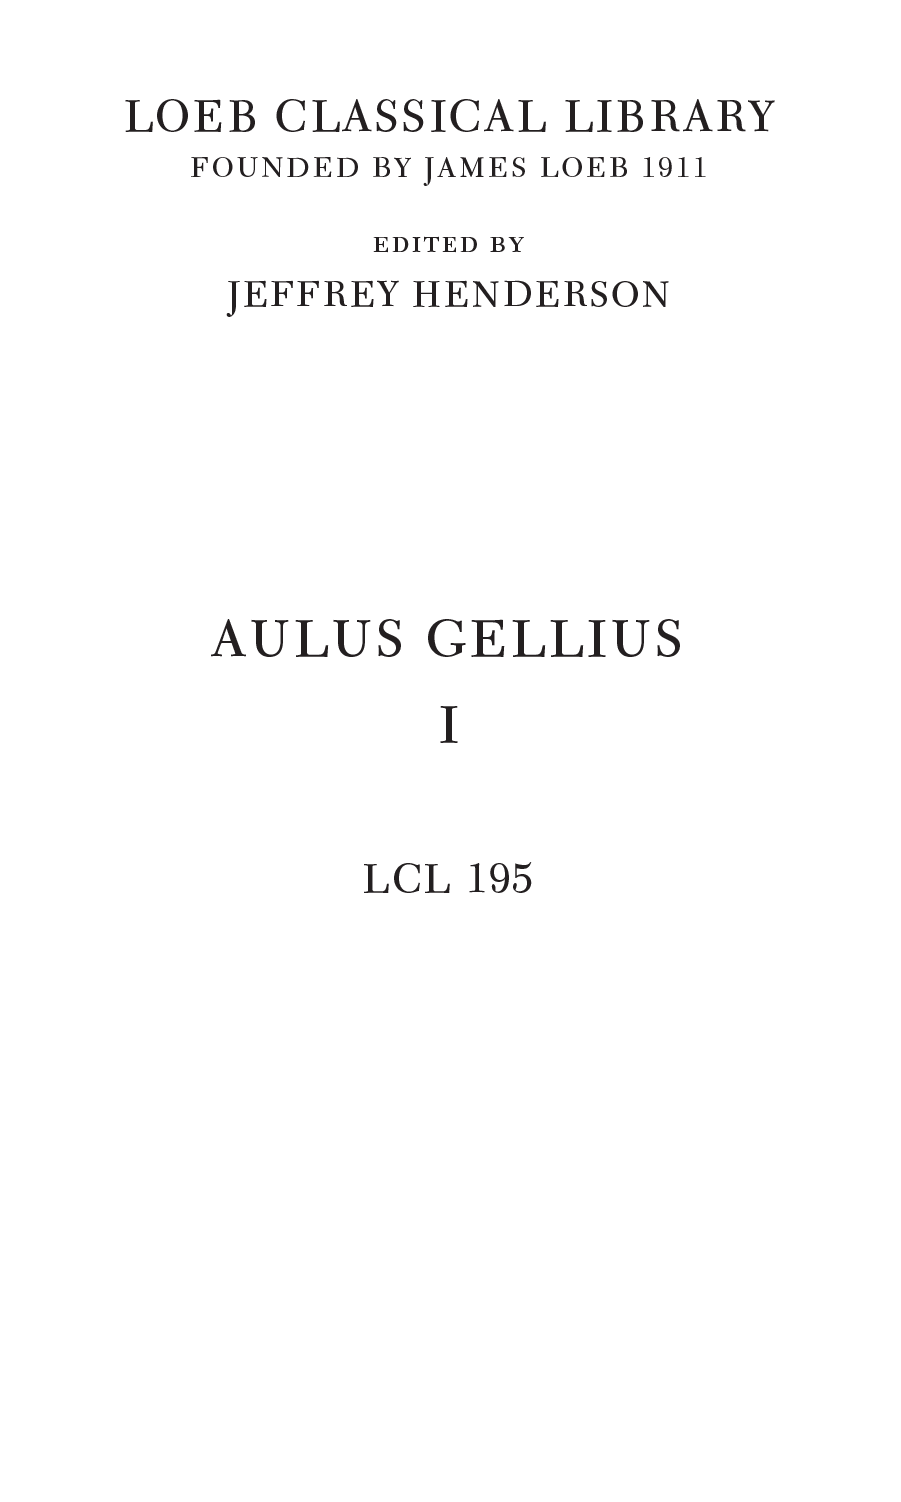 LOEB CLASSICAL LIBRARY FOUNDED BY JAMES LOEB 1911 edited by JEFFREY HENDERSON AULUS GELLIUS I LCL 195